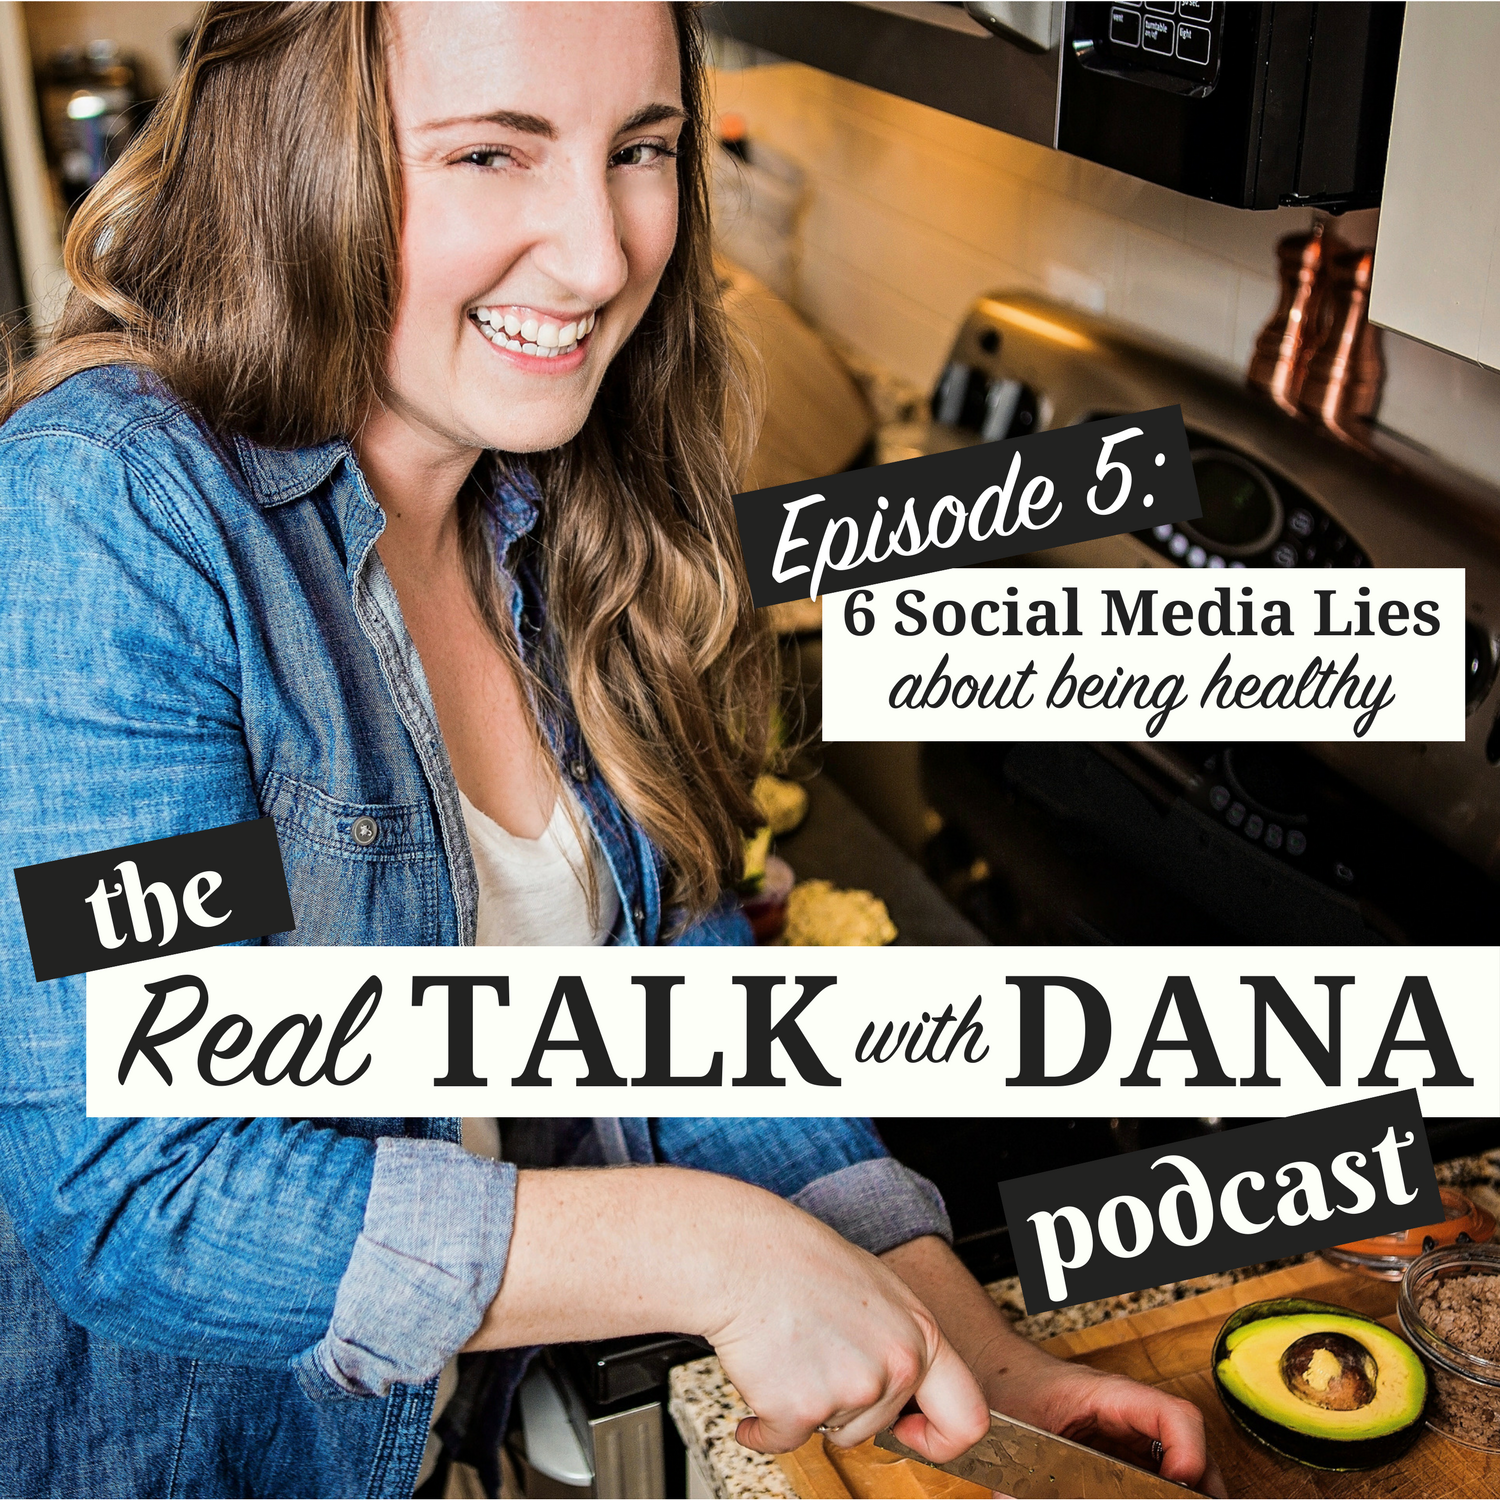 6 Social Media Lies About Being Healthy   Real Talk With Dana     Welcome to episode 5 of the Real Talk with Dana Podcast     6 Social Media  Lies about Being Healthy  It s the time of the year for New year s  resolutions